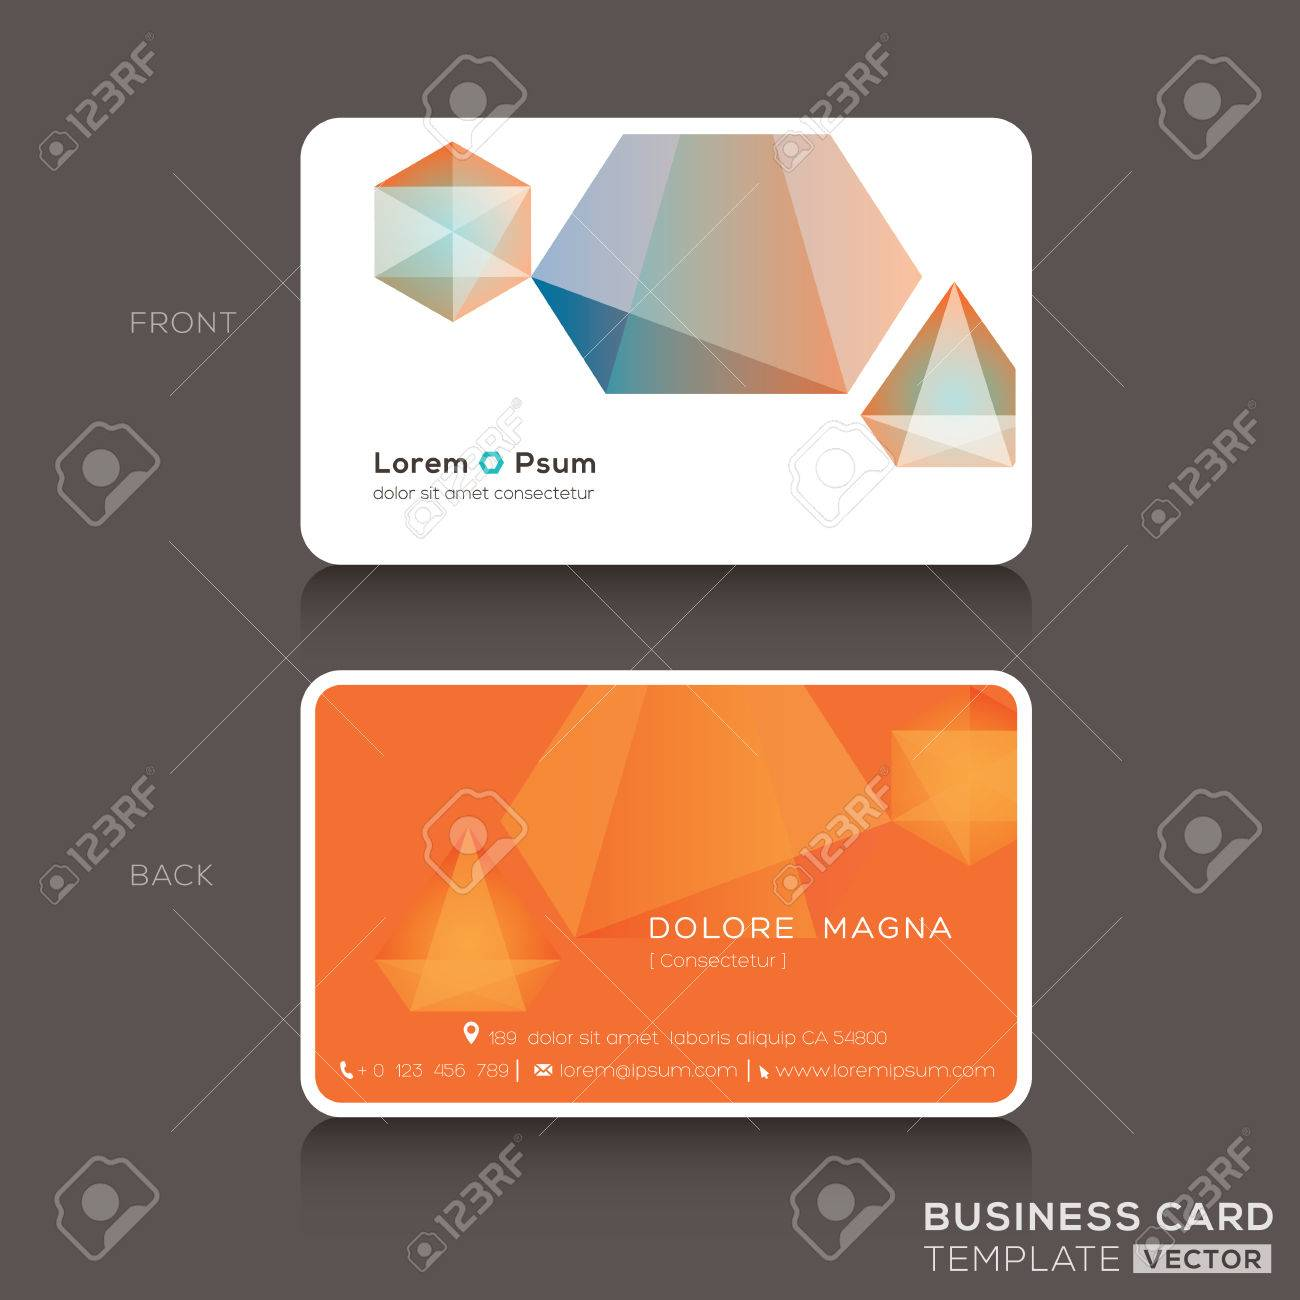 Modern Business Cards Design Template With Low Polygon Style ...